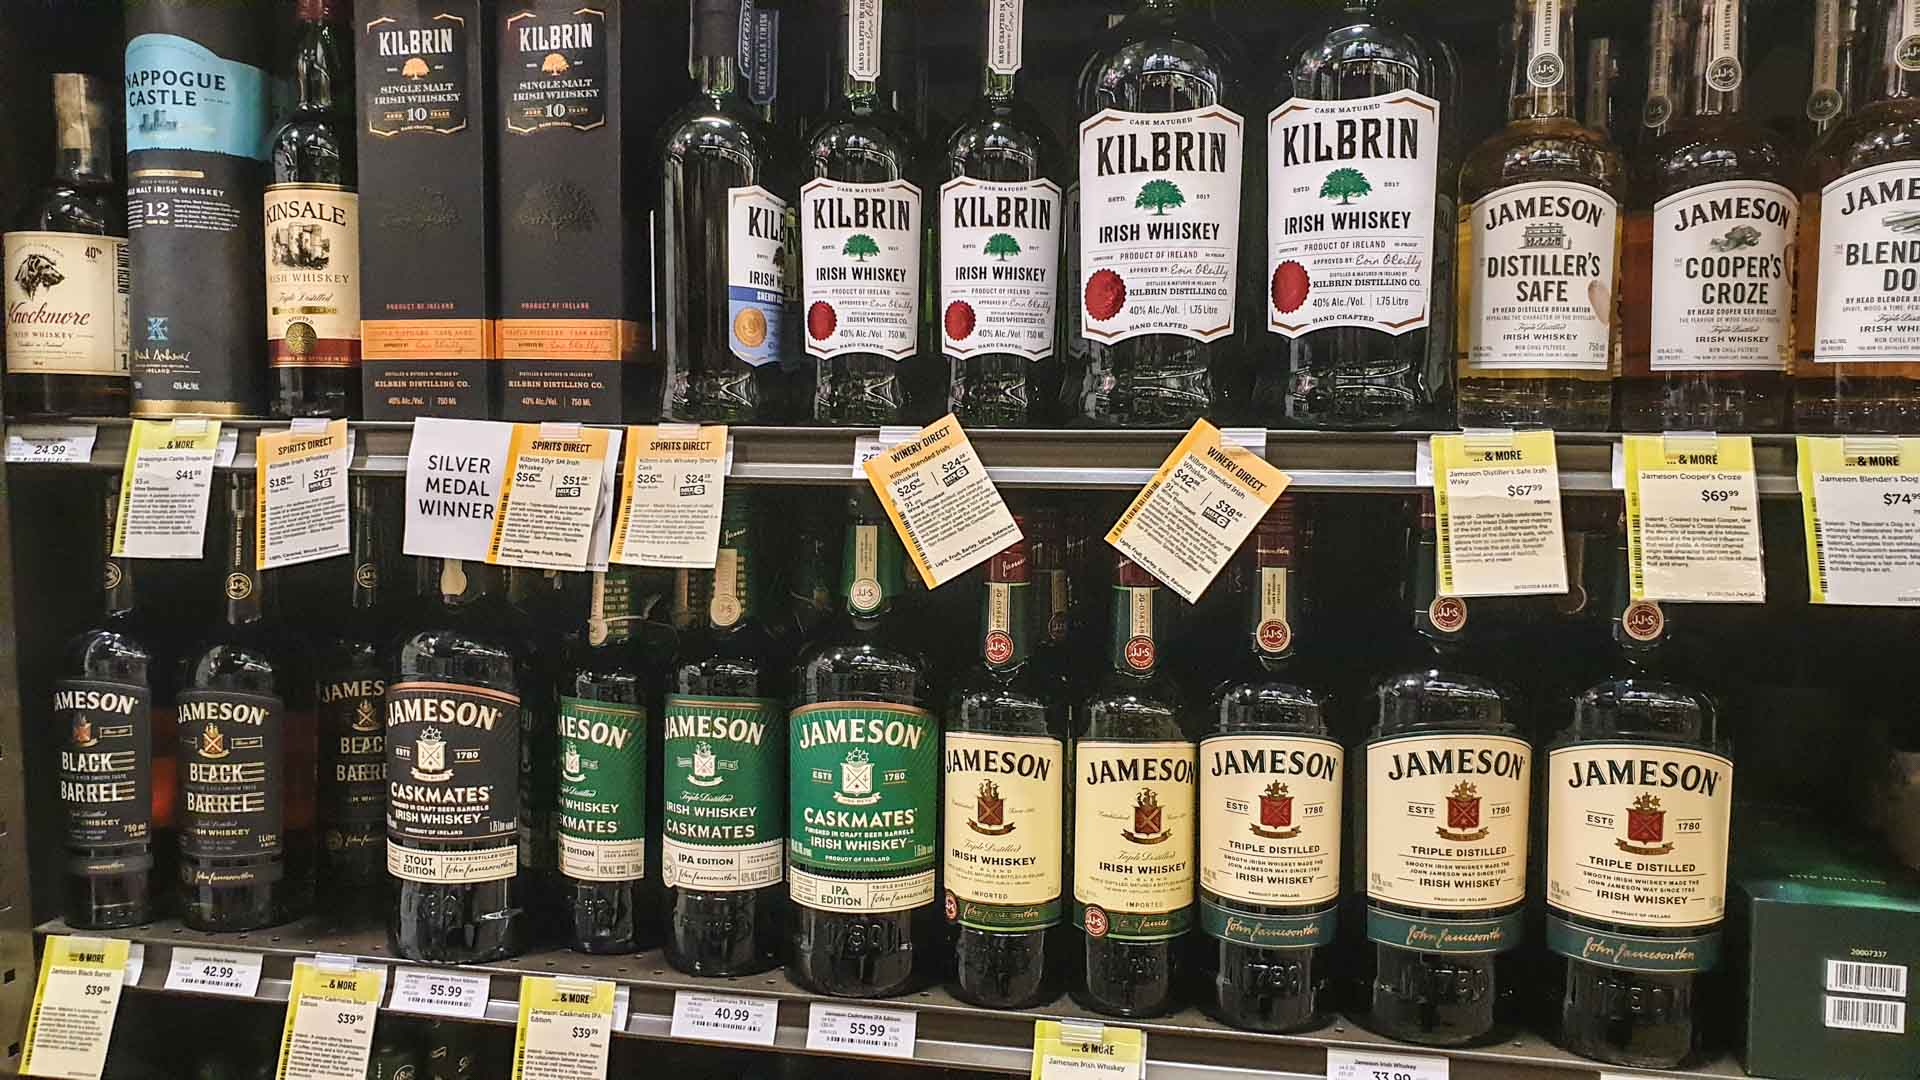 Todos los tipos de Jameson en Total Wine & More, Milford, Connecticut